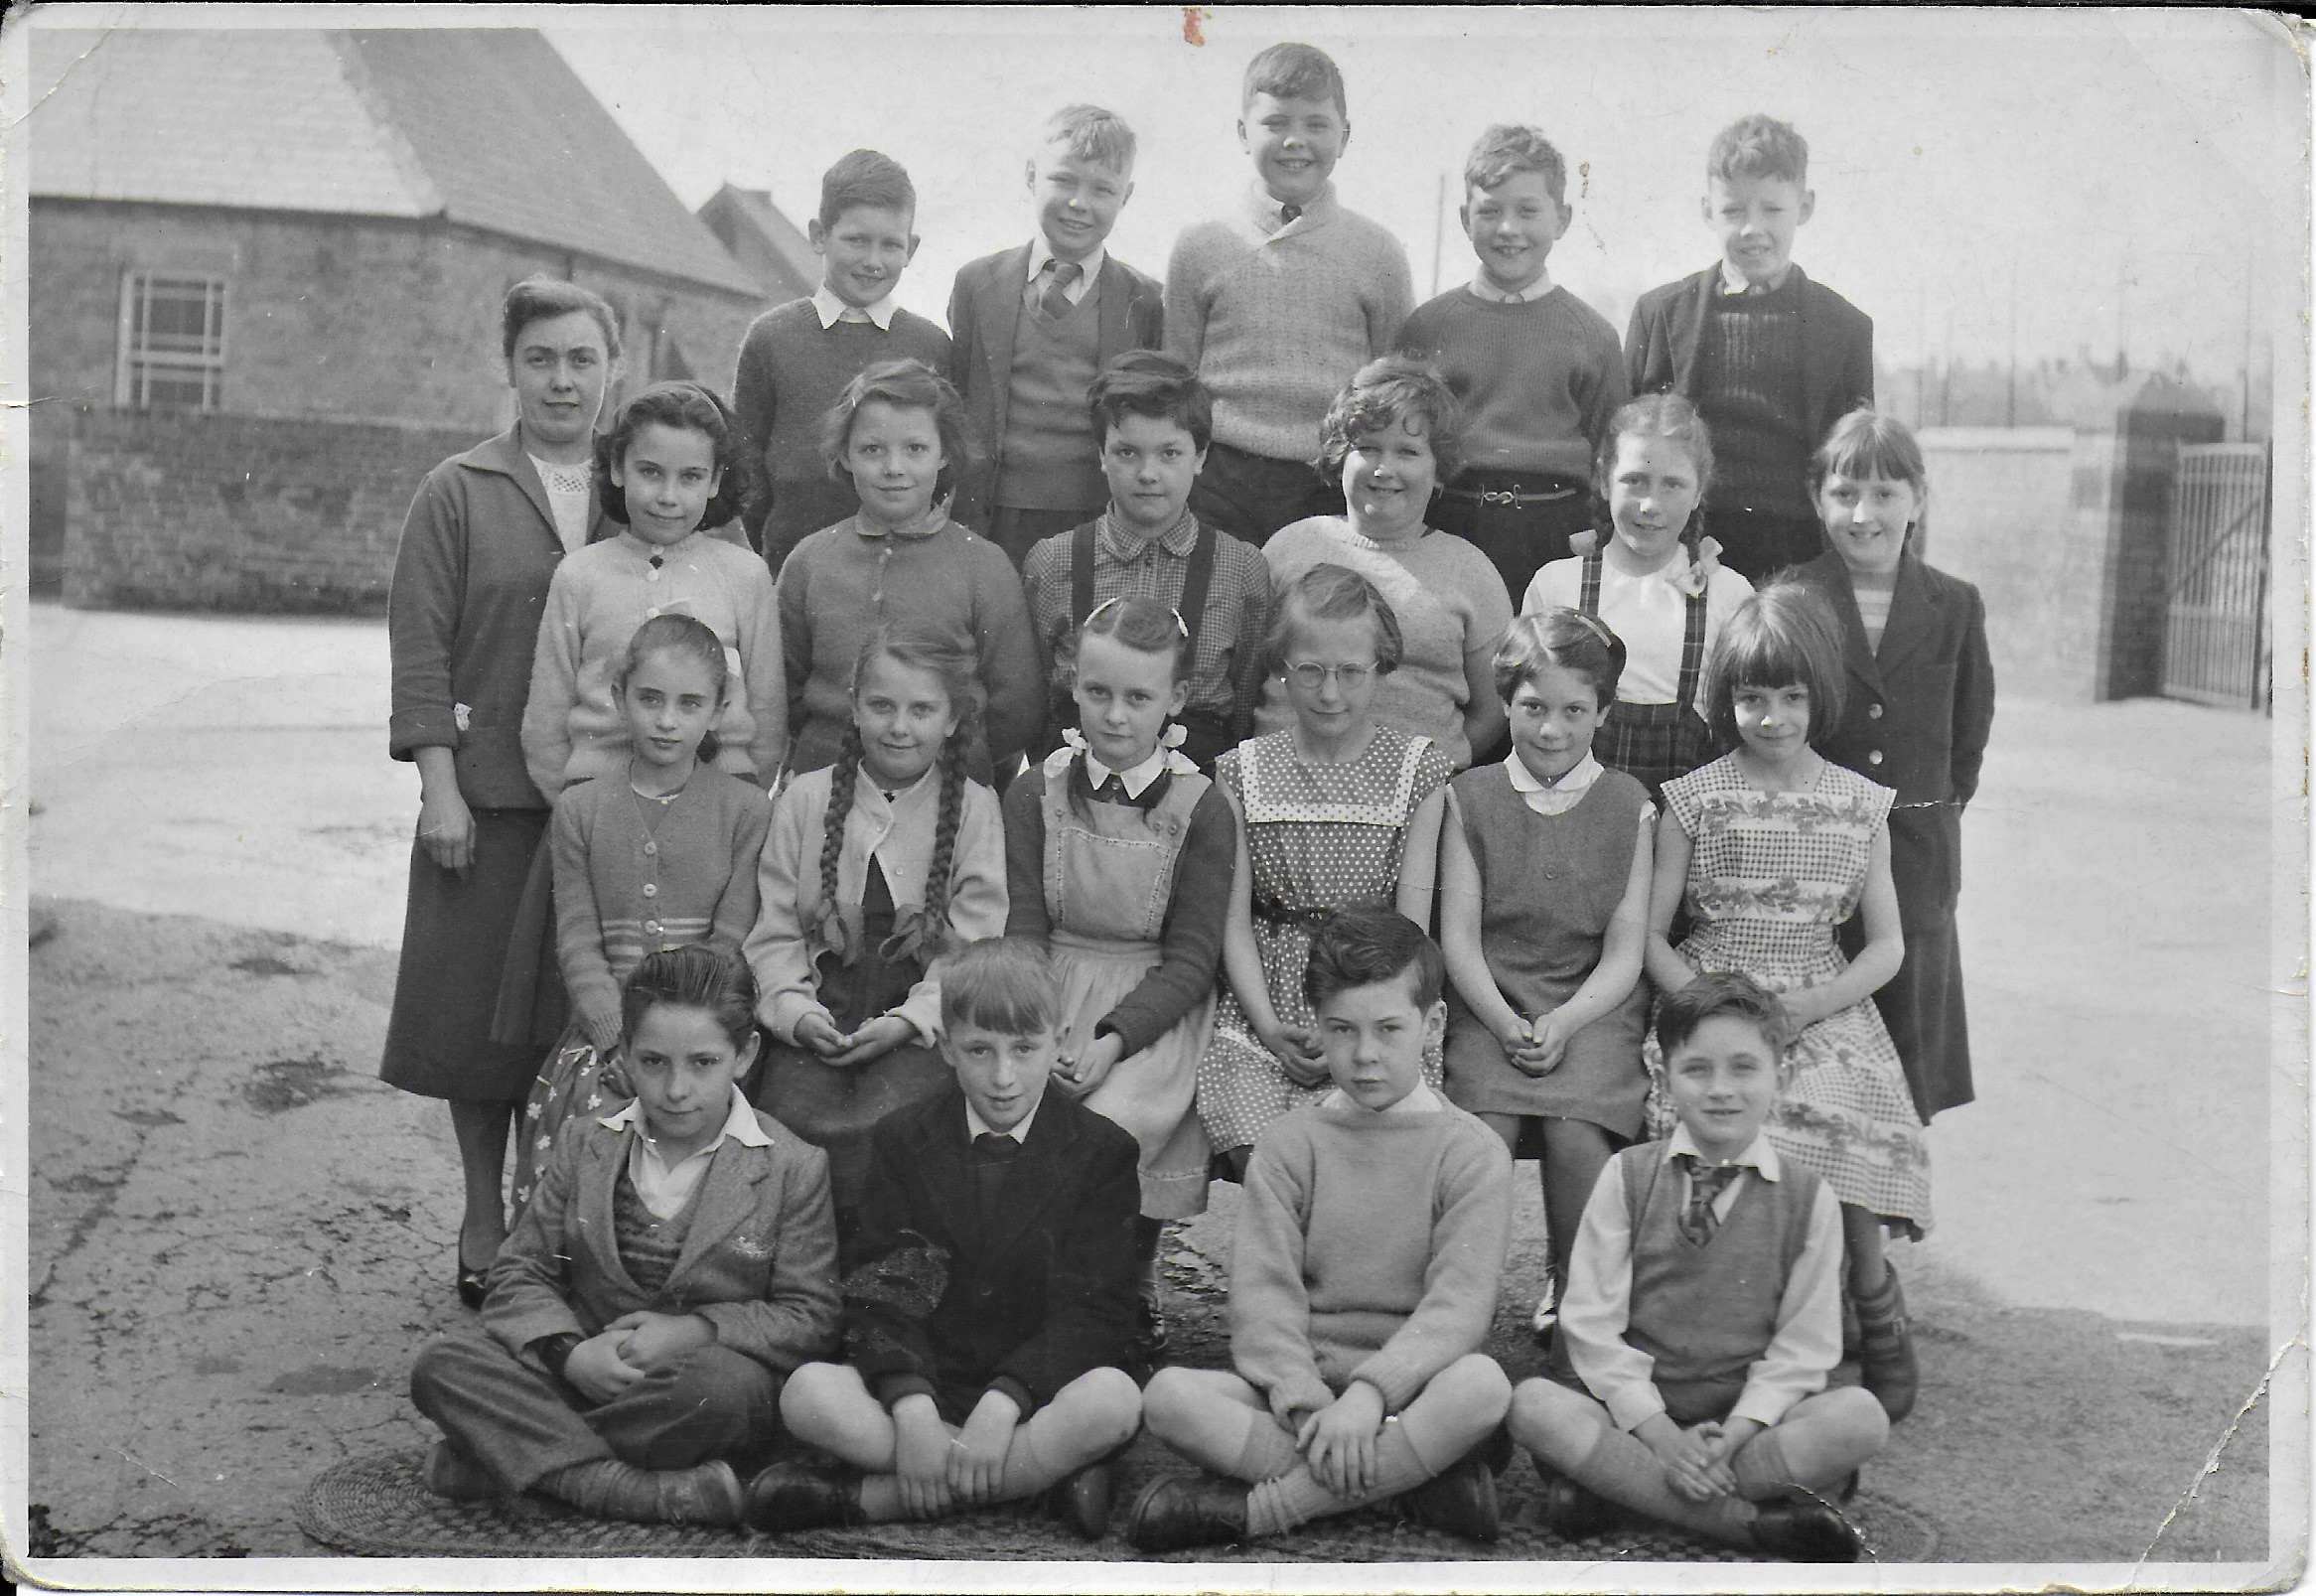 Class picture courtesy of John Jones, from Ponciau Primary School.